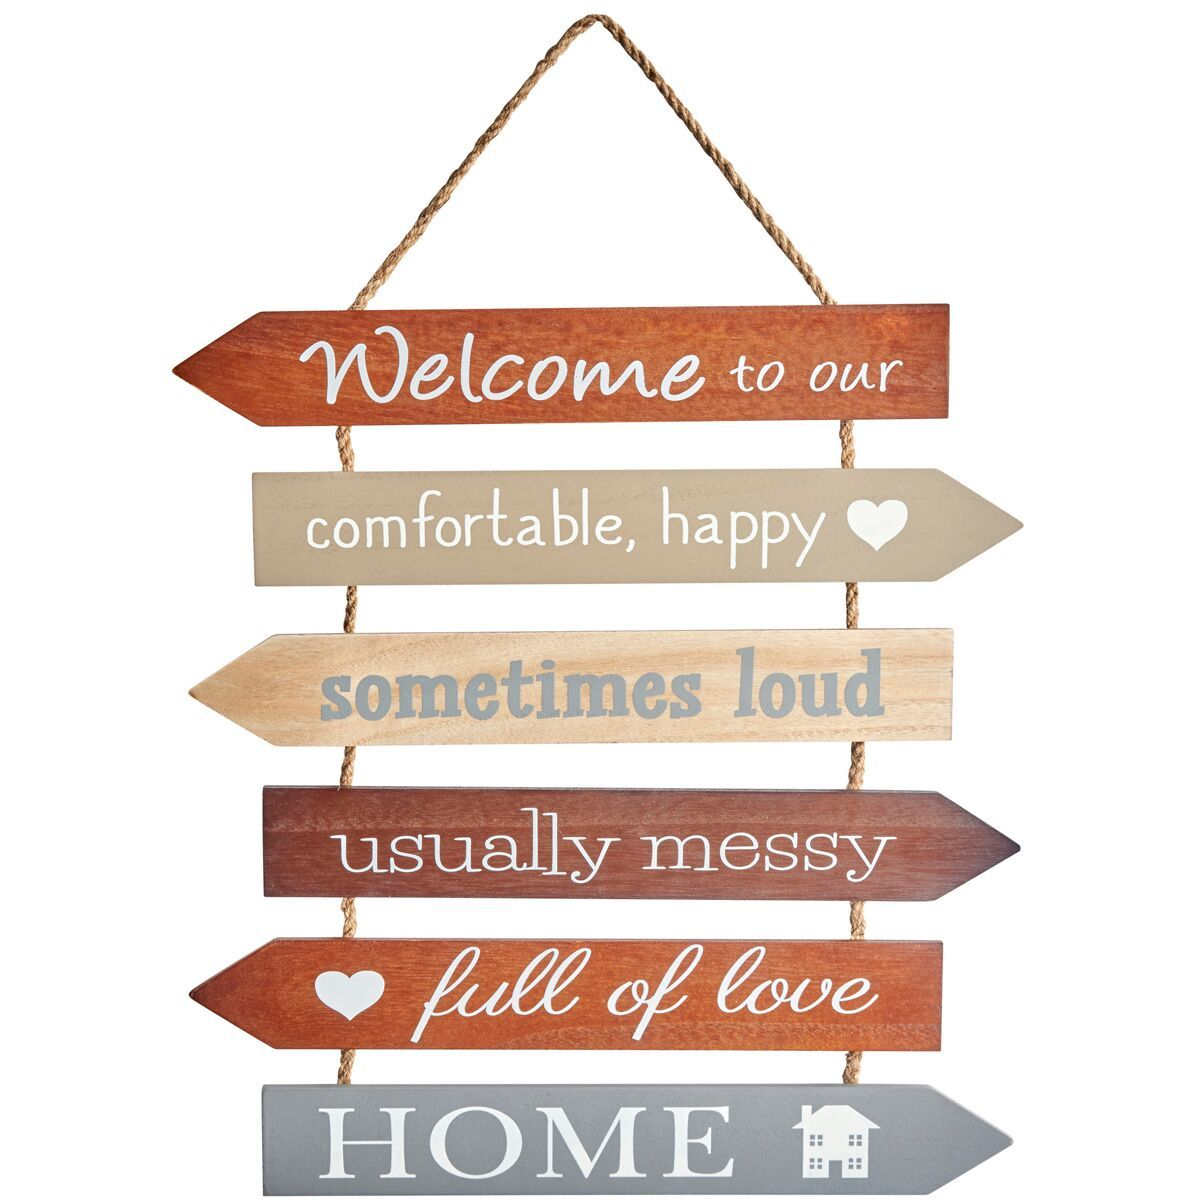 """Welcome to our Home"" Wall Hanging image"